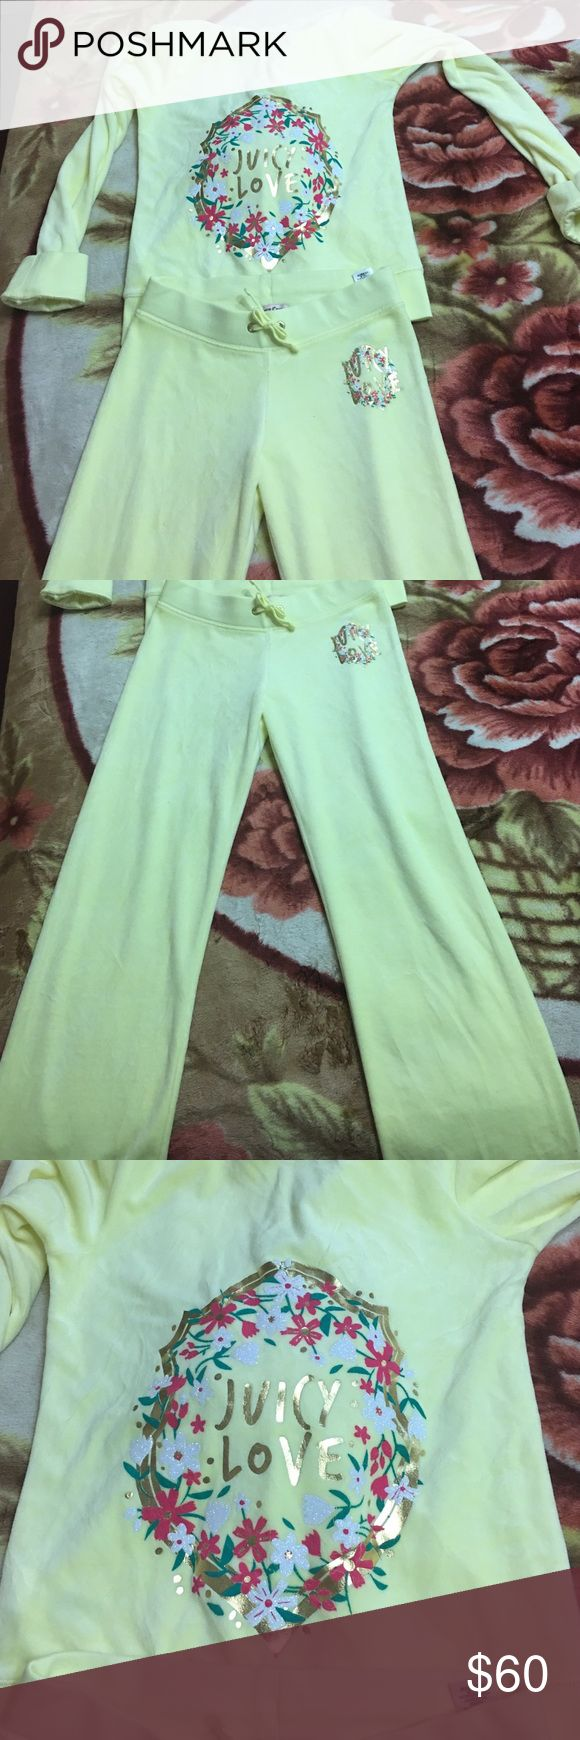 Authentic Juicy Couture Suede SweatSuit Never used Juicy Couture SweatSuit Juicy Couture Matching Sets